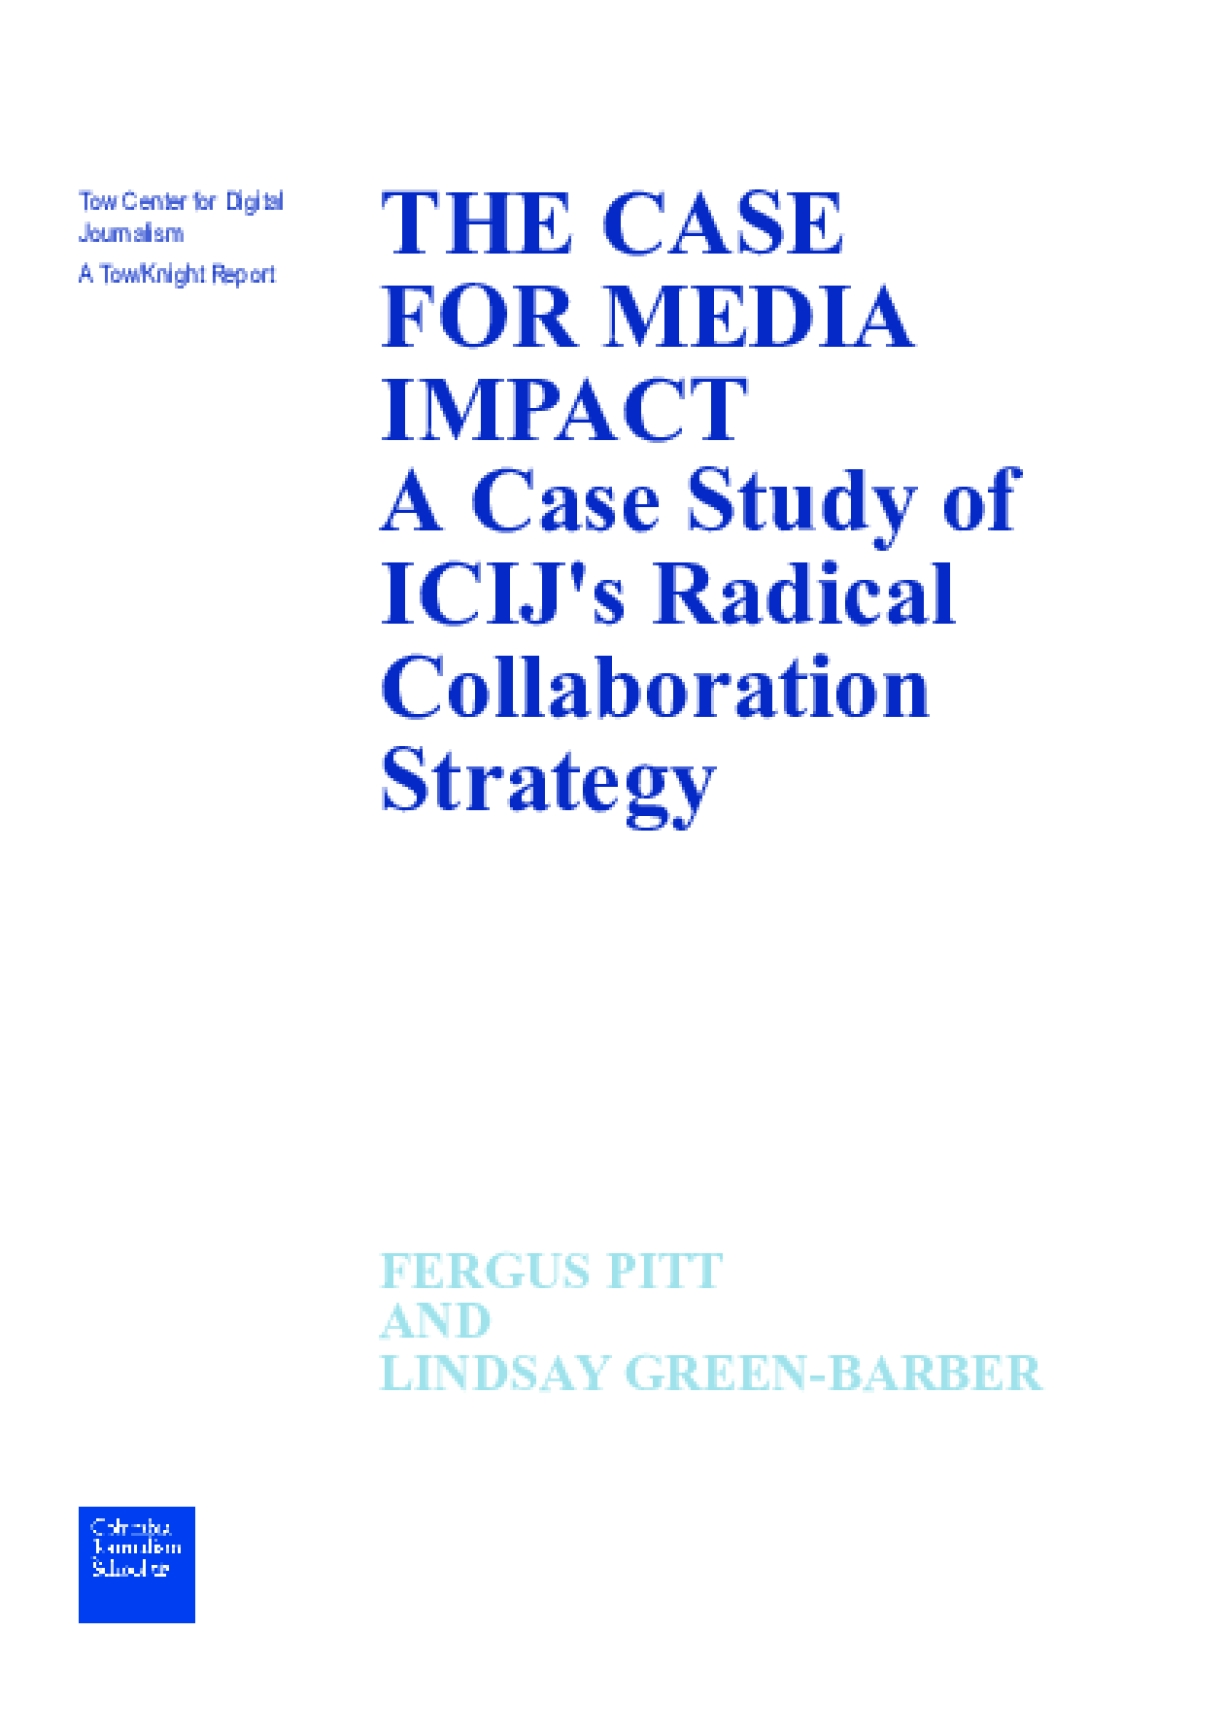 The Case for Media Impact: A Case Study of ICIJ's Radical Collaboration Strategy